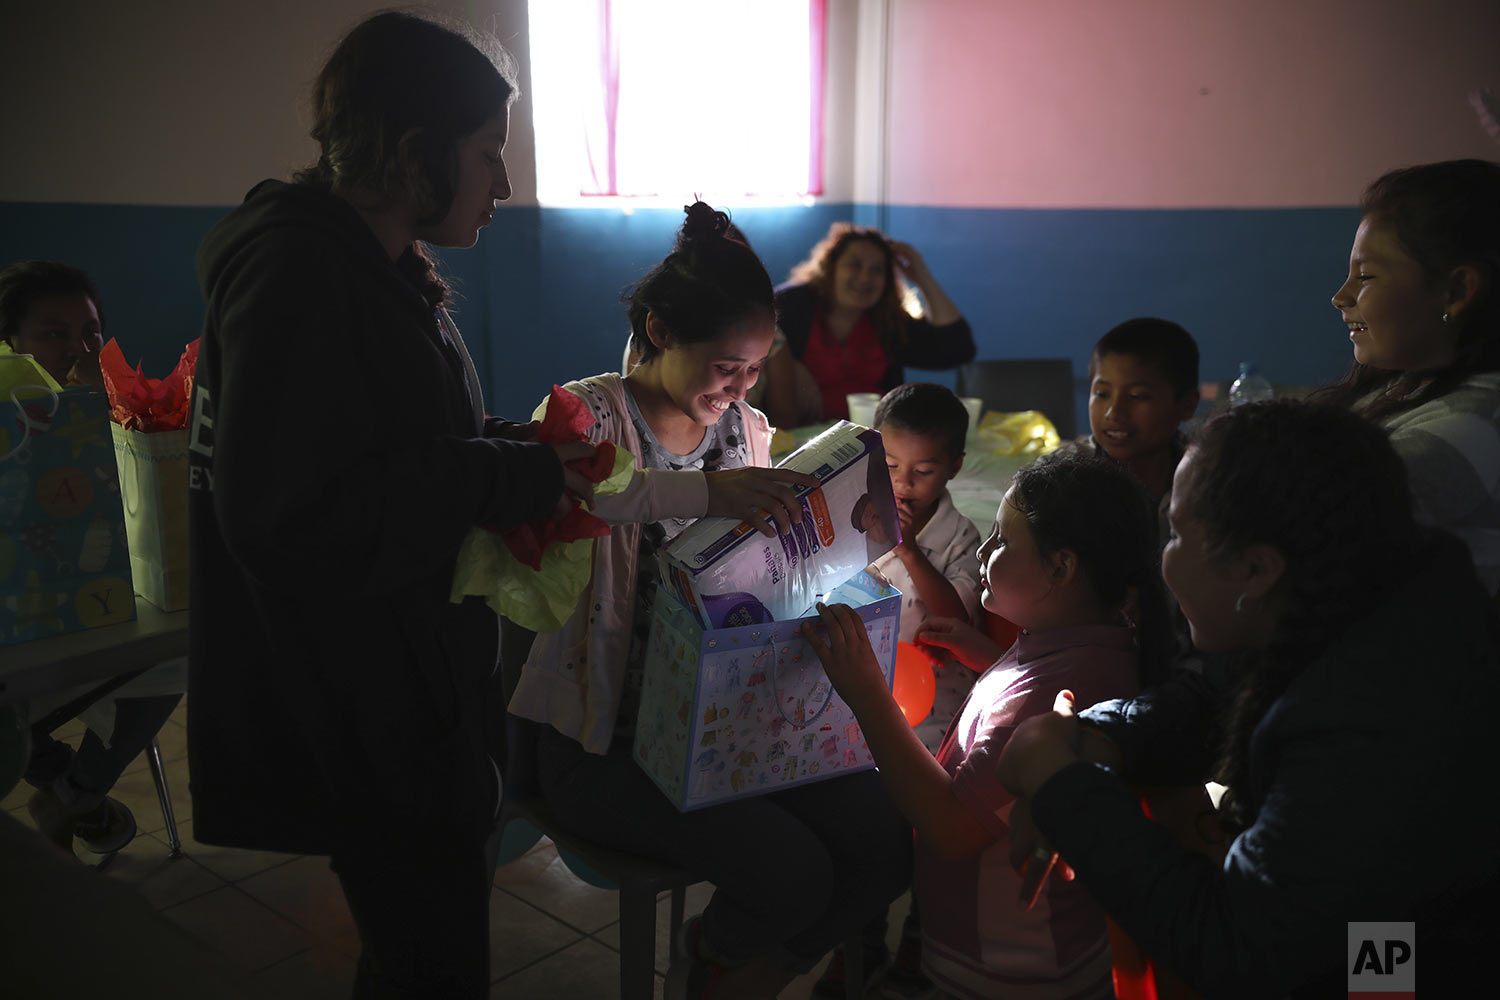 In this May 25, 2019 photo, Salvadoran teen migrant Milagro de Jesus Henriquez Ayala, opens her gifts during her baby shower at at a meeting hall in Tijuana, Mexico.  (AP Photo/Emilio Espejel)